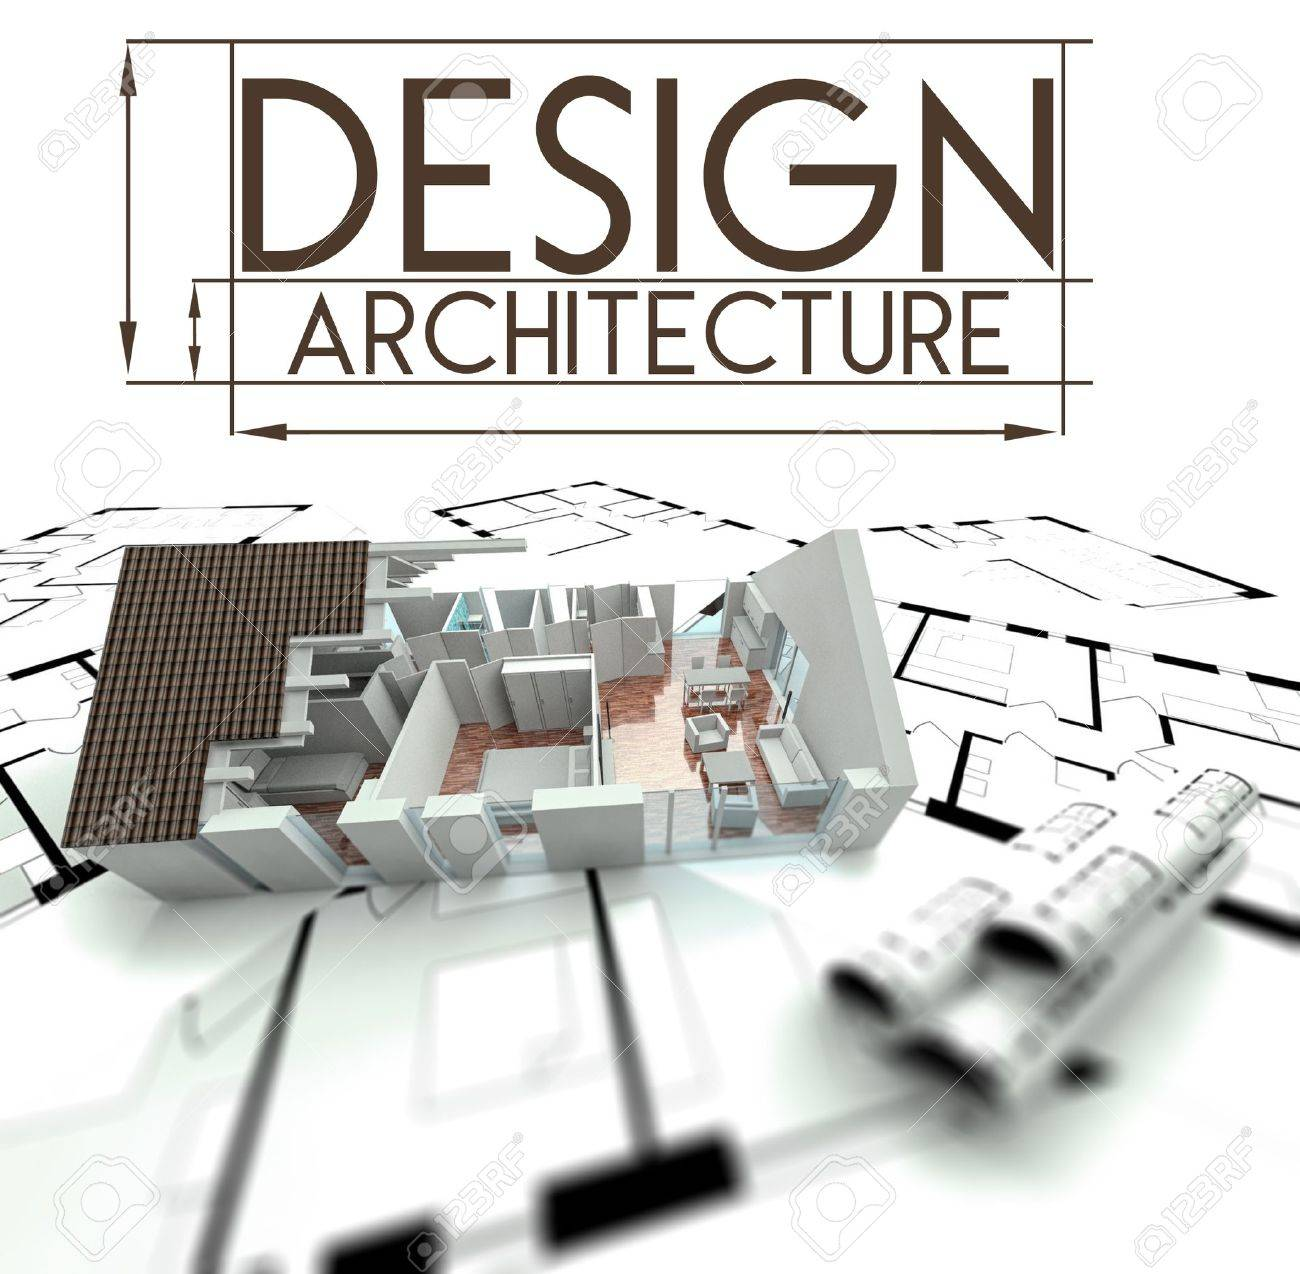 Architecture Blueprints 3d architecture blueprints 3d expensivelooking house on top stock t